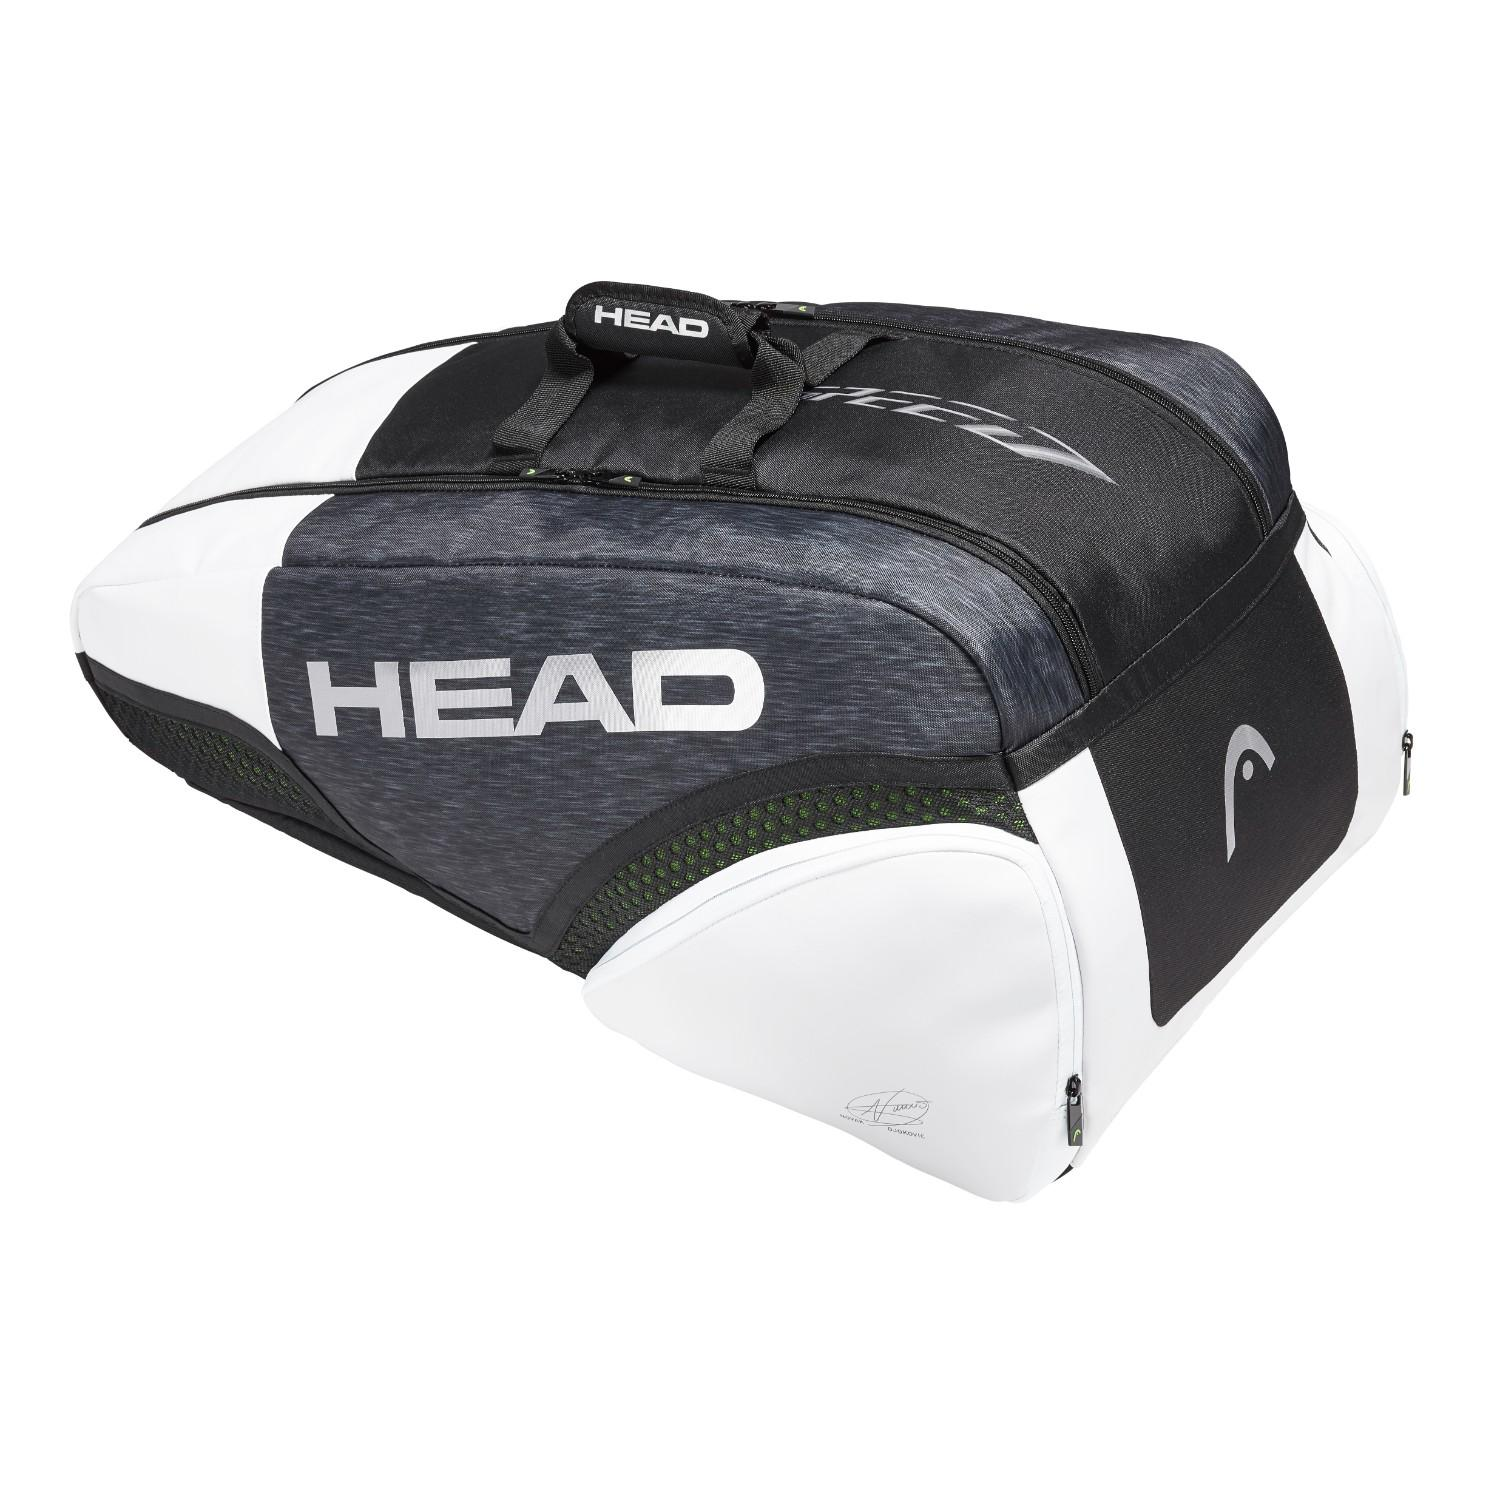 Head Djokovic Supercombi 9 Rackets Bag By Head.